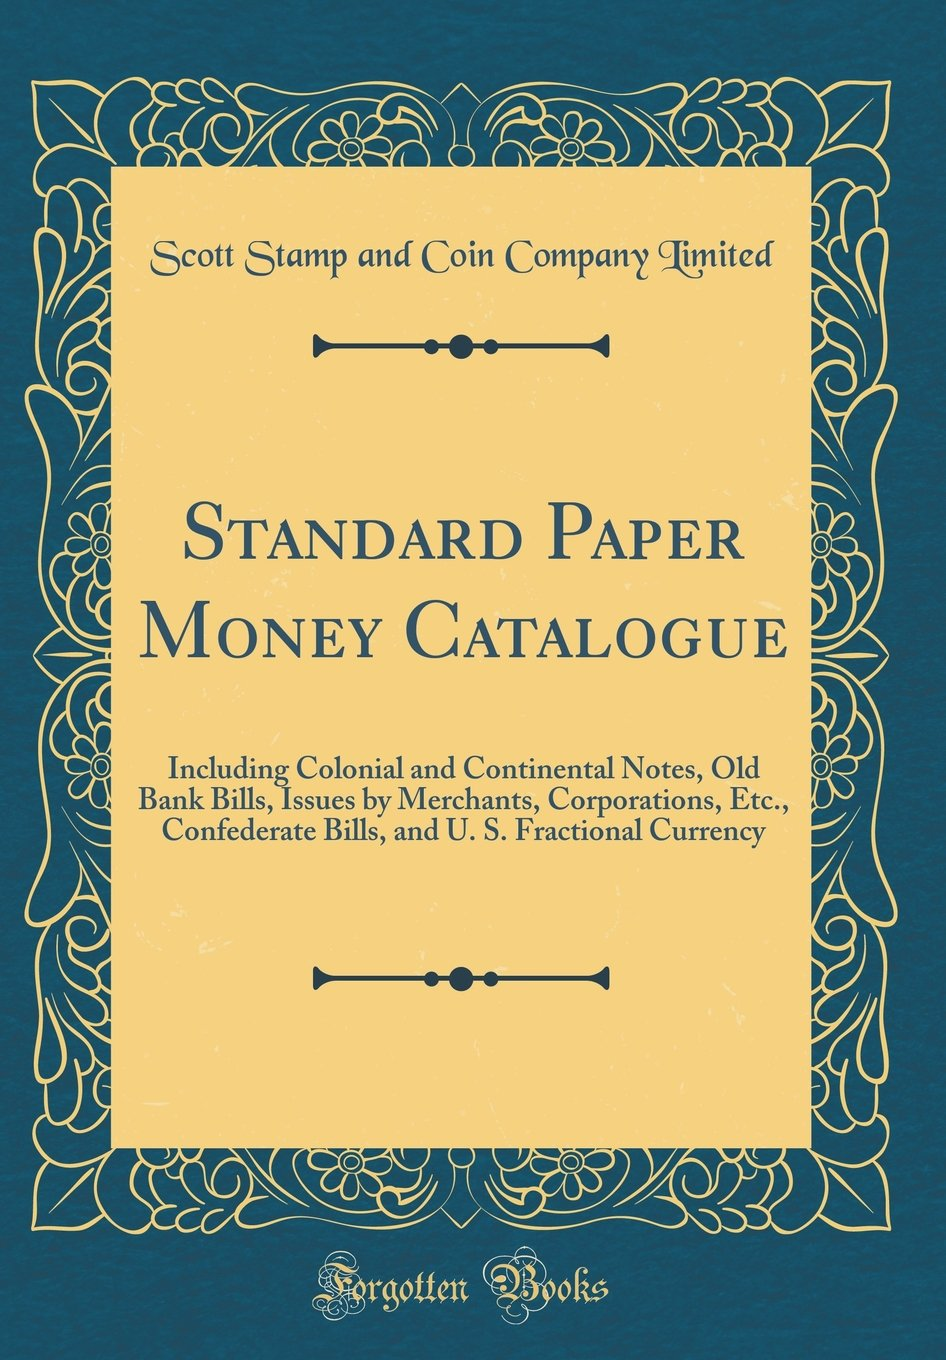 Standard Paper Money Catalogue: Including Colonial and Continental Notes, Old Bank Bills, Issues by Merchants, Corporations, Etc., Confederate Bills, and U. S. Fractional Currency (Classic Reprint) pdf